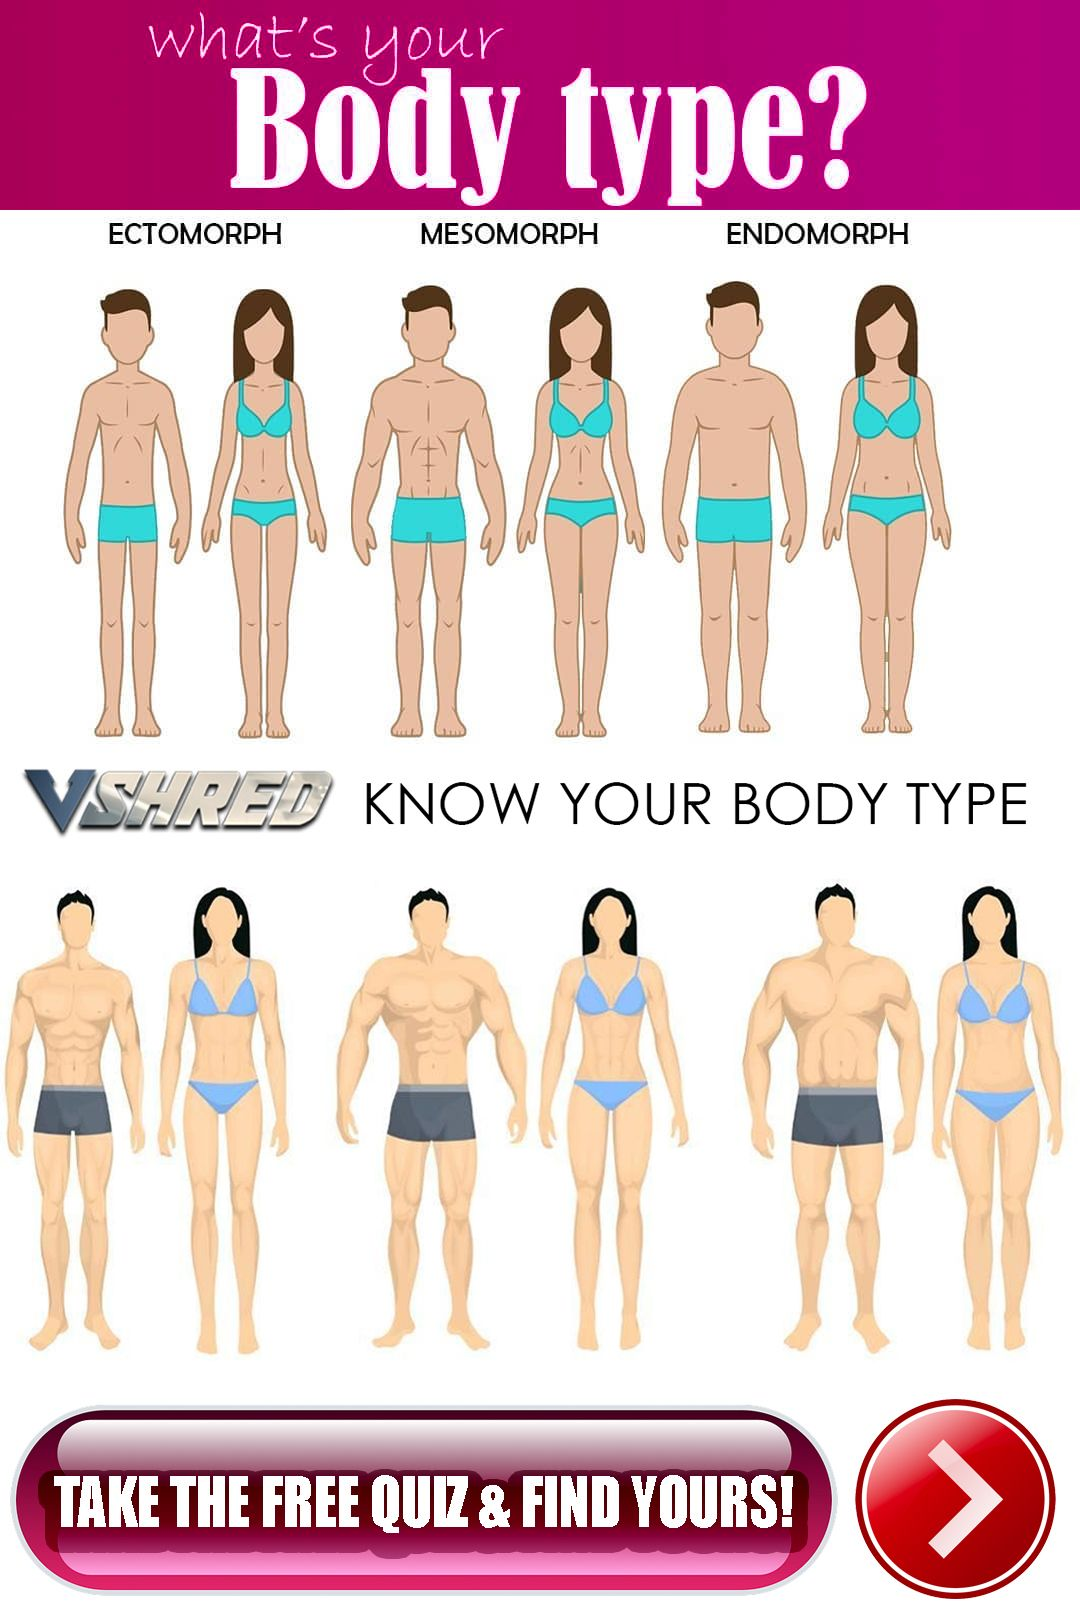 V Shred is the fastest growing fitess brand. images